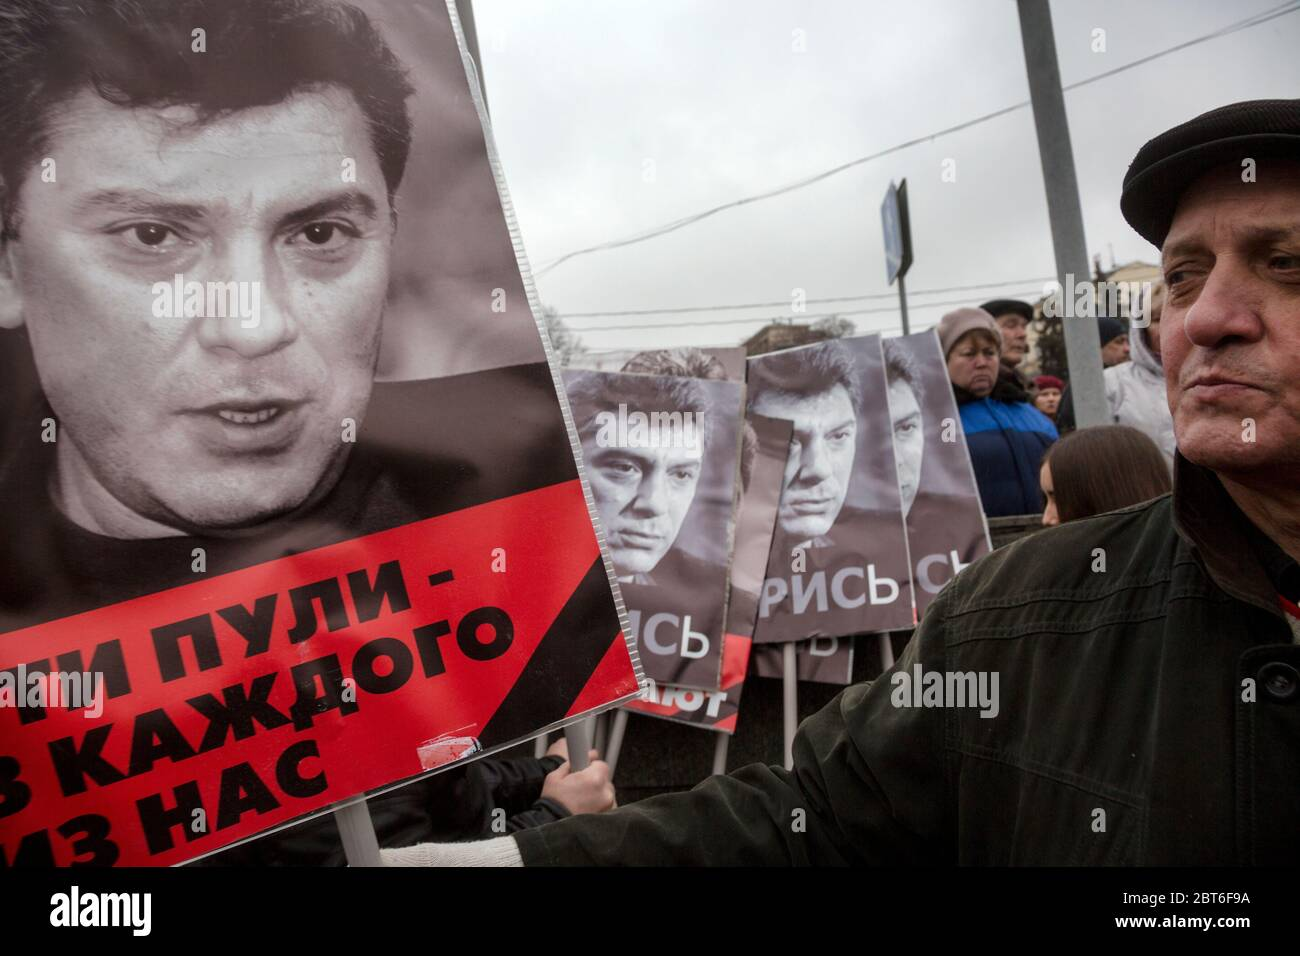 Moscow, Russia. 1st of March, 2015 Participants of the funeral procession hold portraits in memory of opposition politician Boris Nemtsov, who was killed on the night of February 28, 2015 on the Bolshoy Moskvoretsky bridge in Moscow, Russia Stock Photo